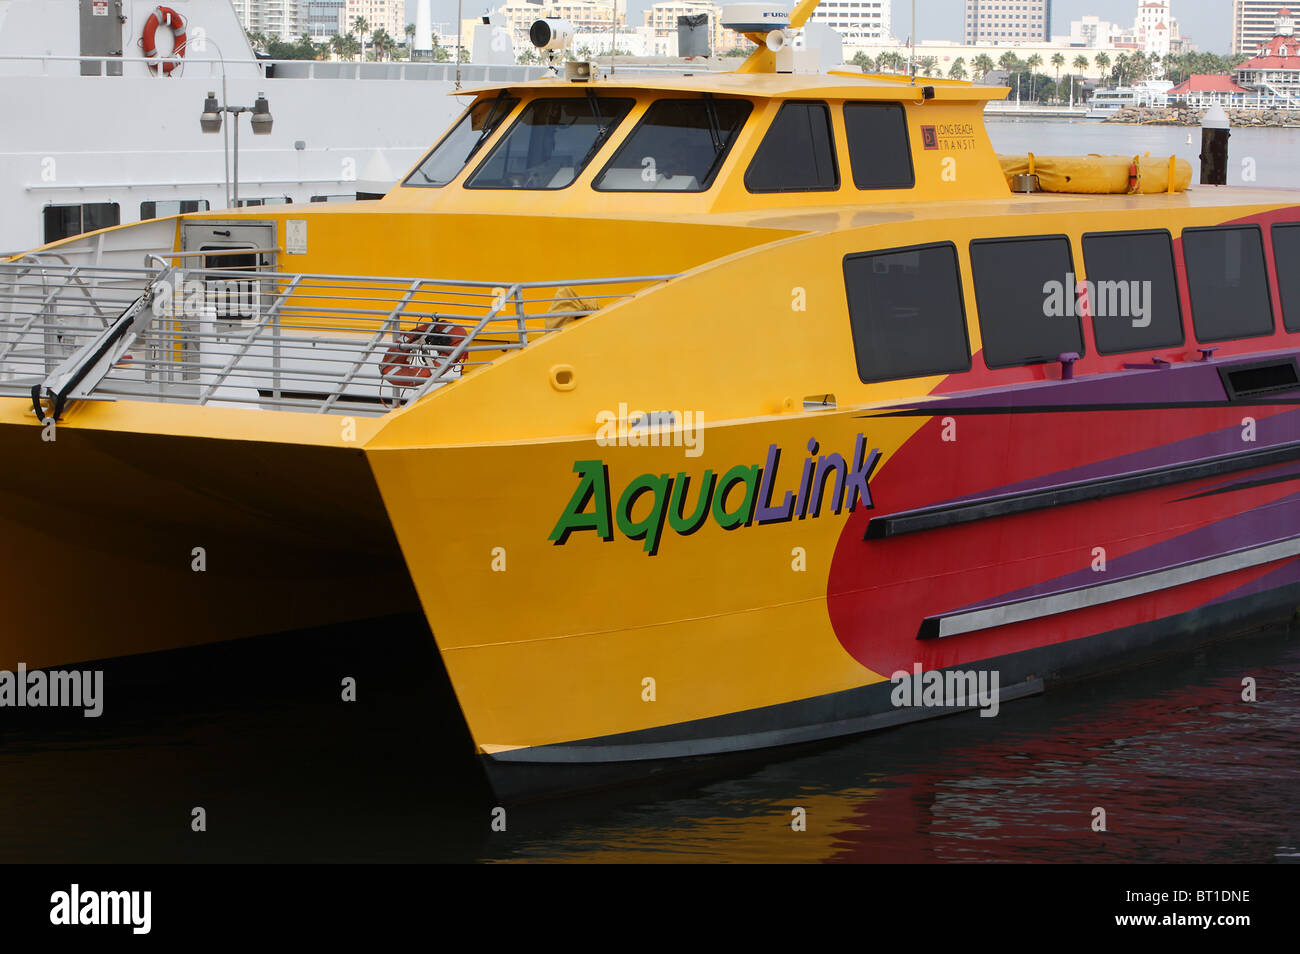 High-Speed Shuttle Between Long Beach Harbor and Alamitos Bay. It can carry 75 people. - Stock Image